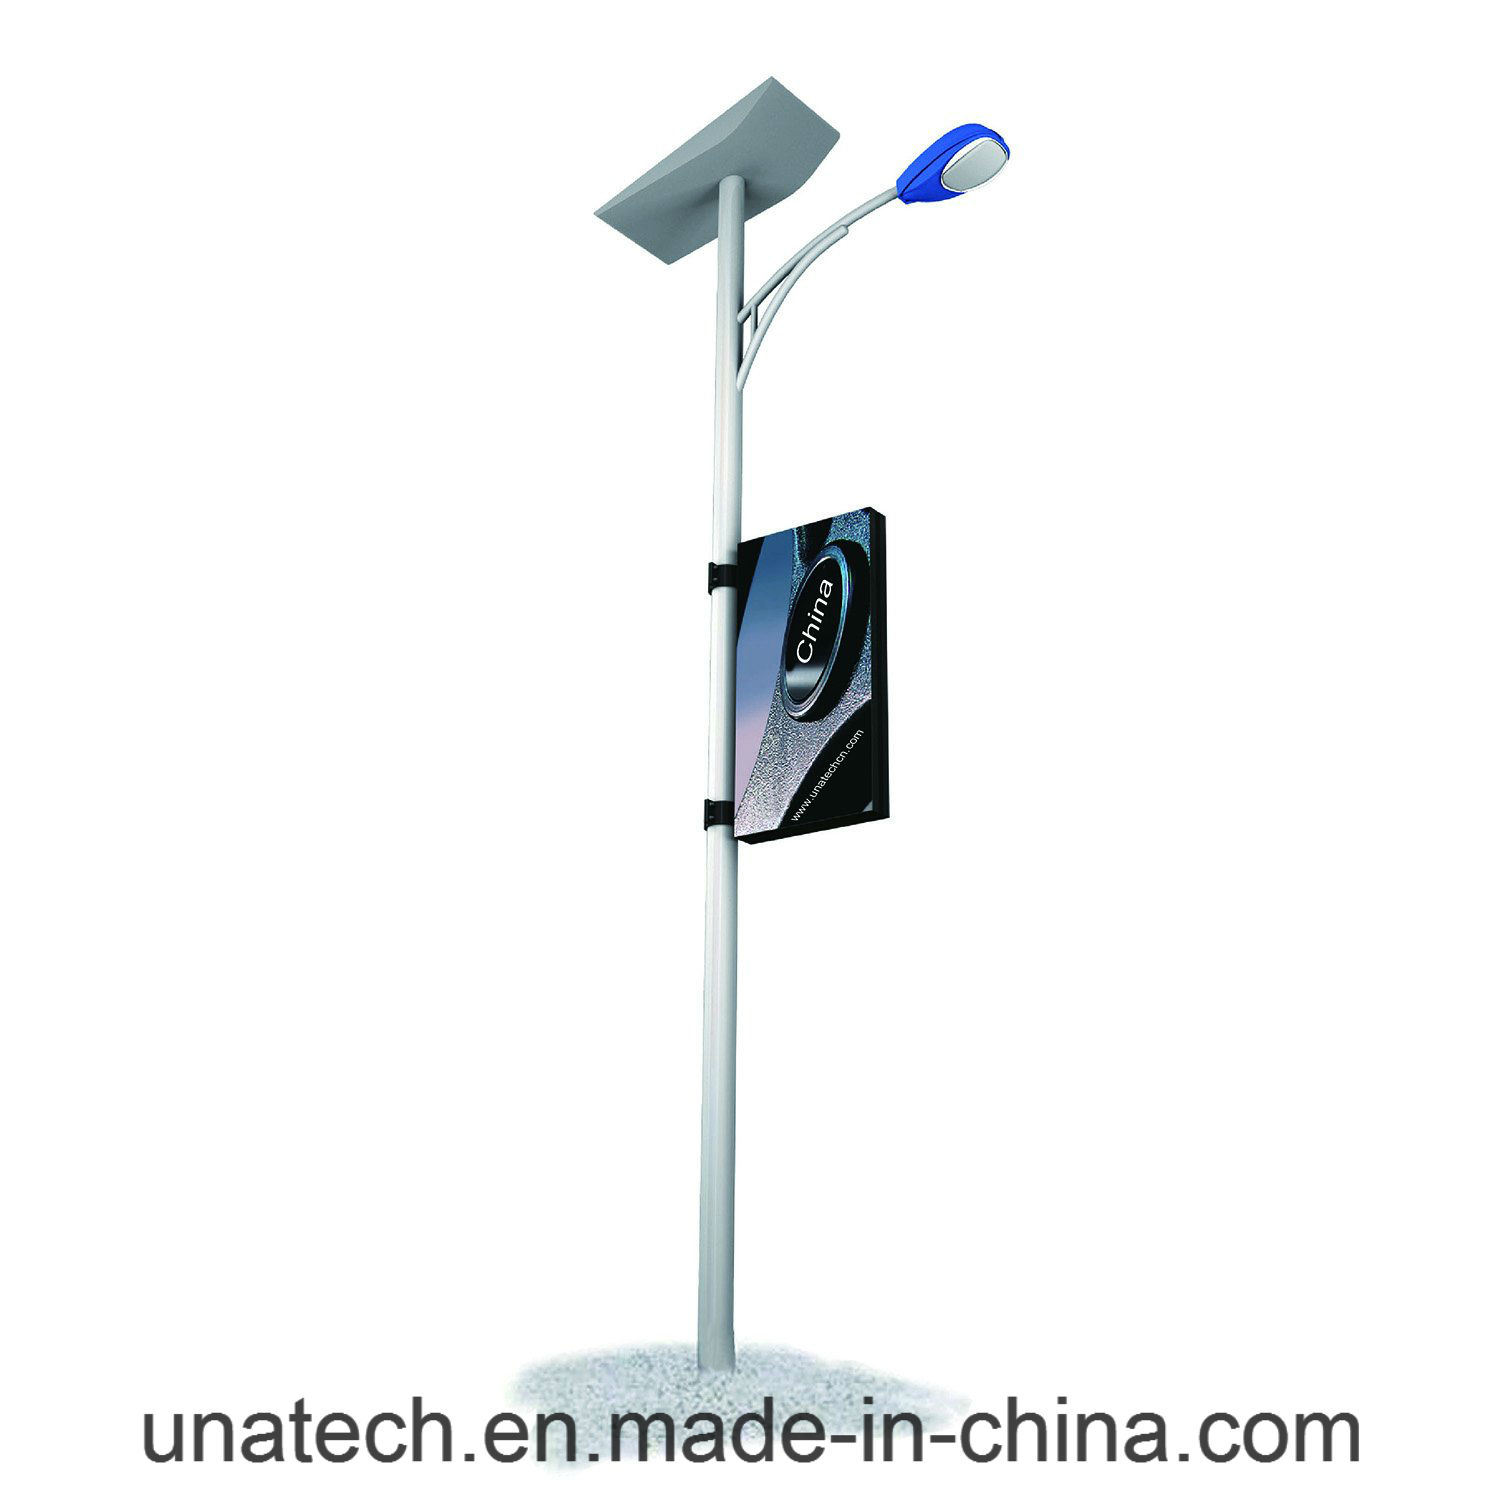 Outdoor Lamp Pole Advertising Media LED Banner Light Box